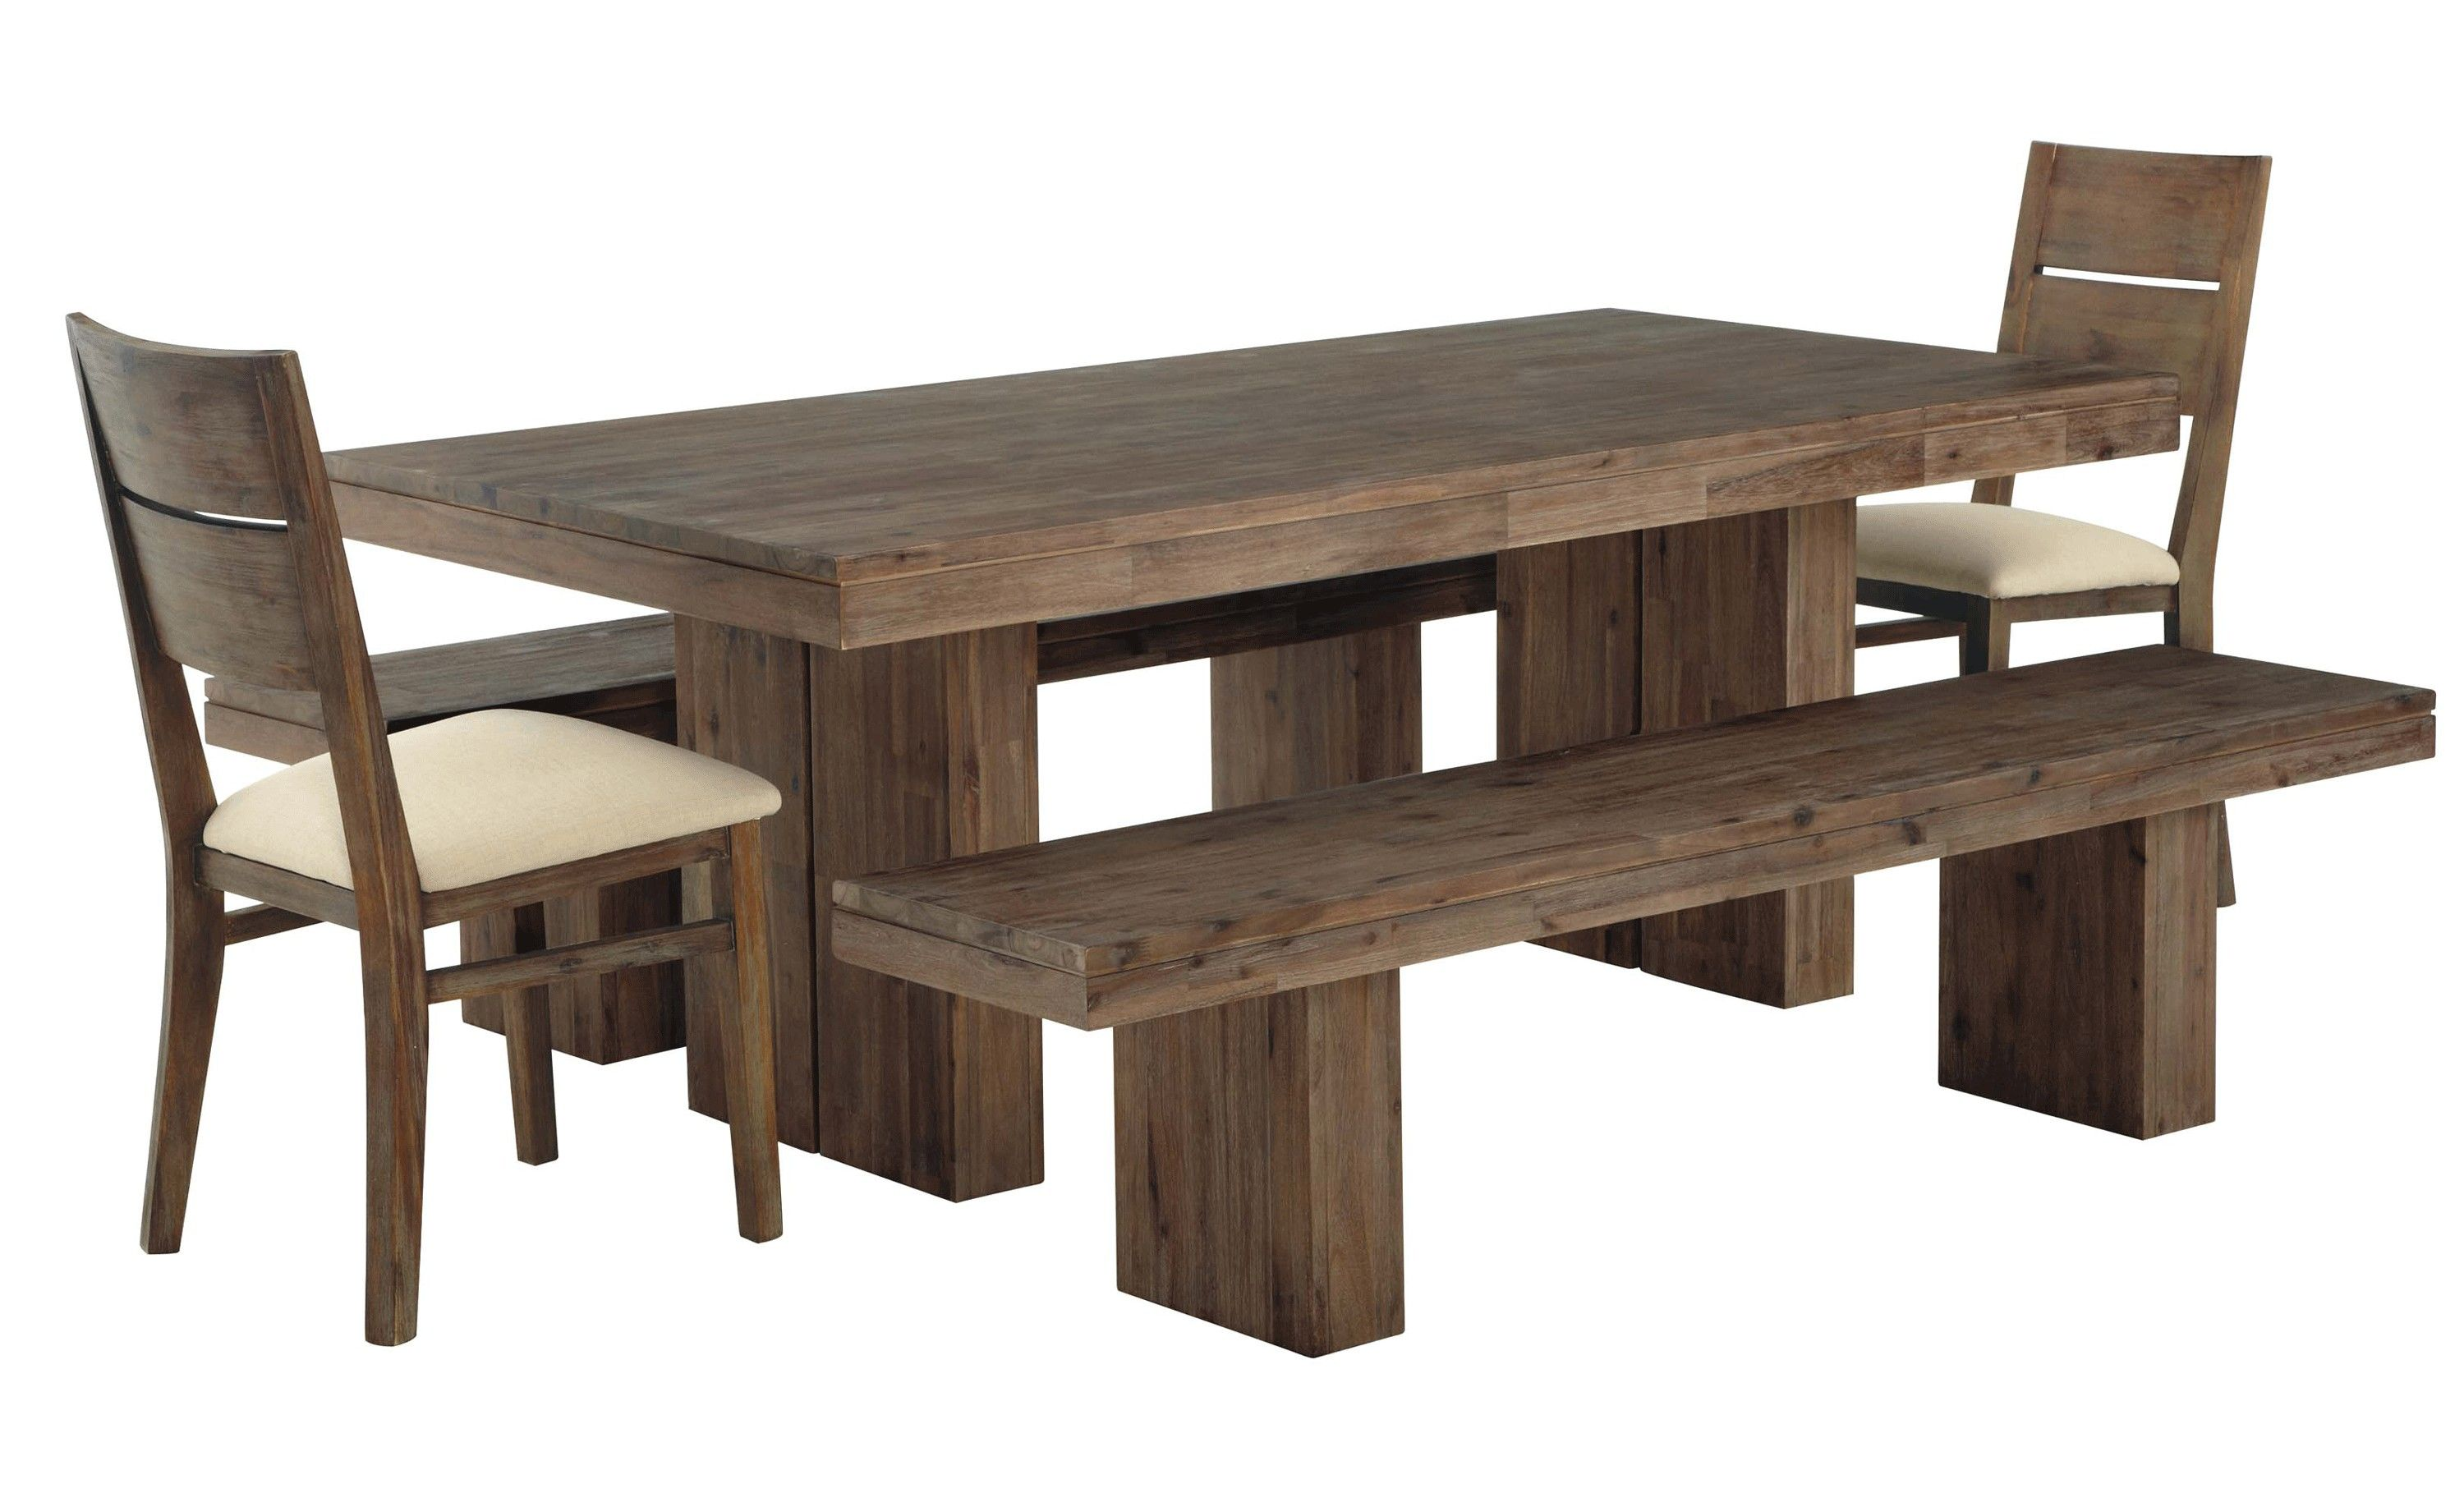 Furniture Diy Solid Wood Farmhouse Dining Table With Double Bench